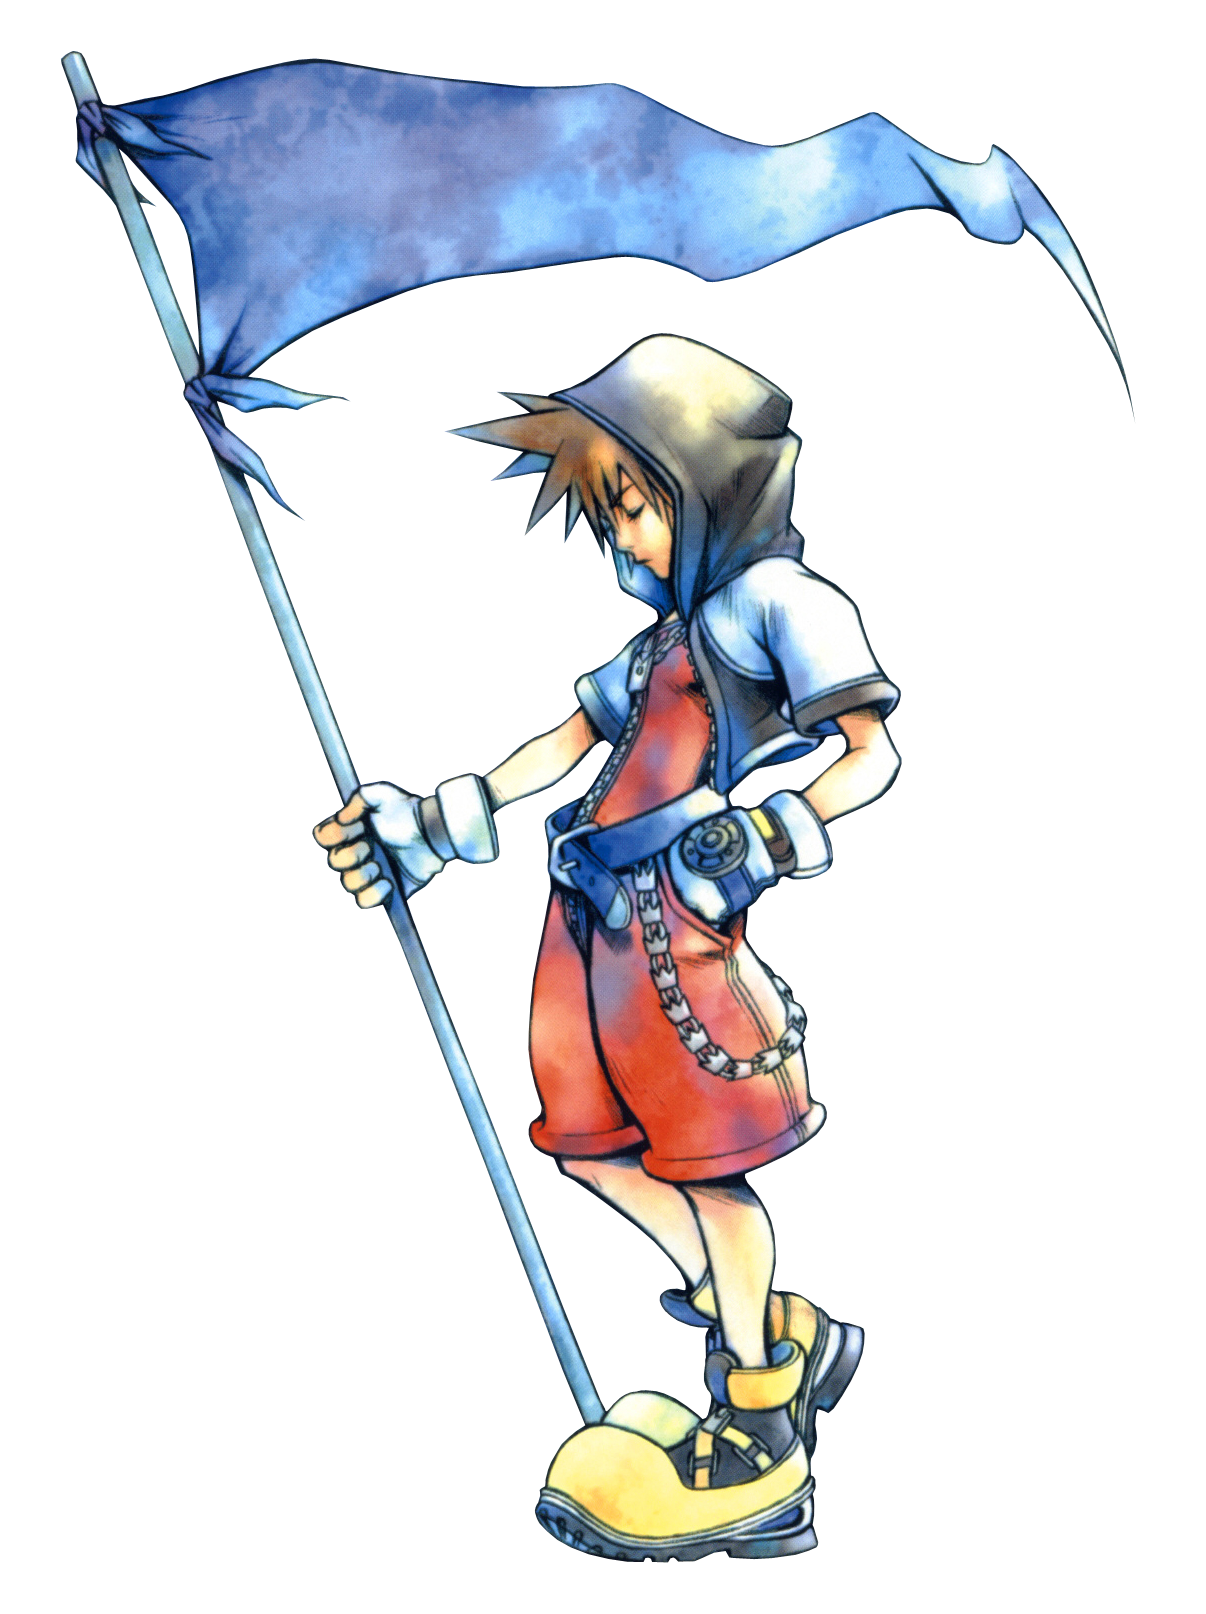 Transparent images pluspng pngpluspngcom. Kingdom hearts png